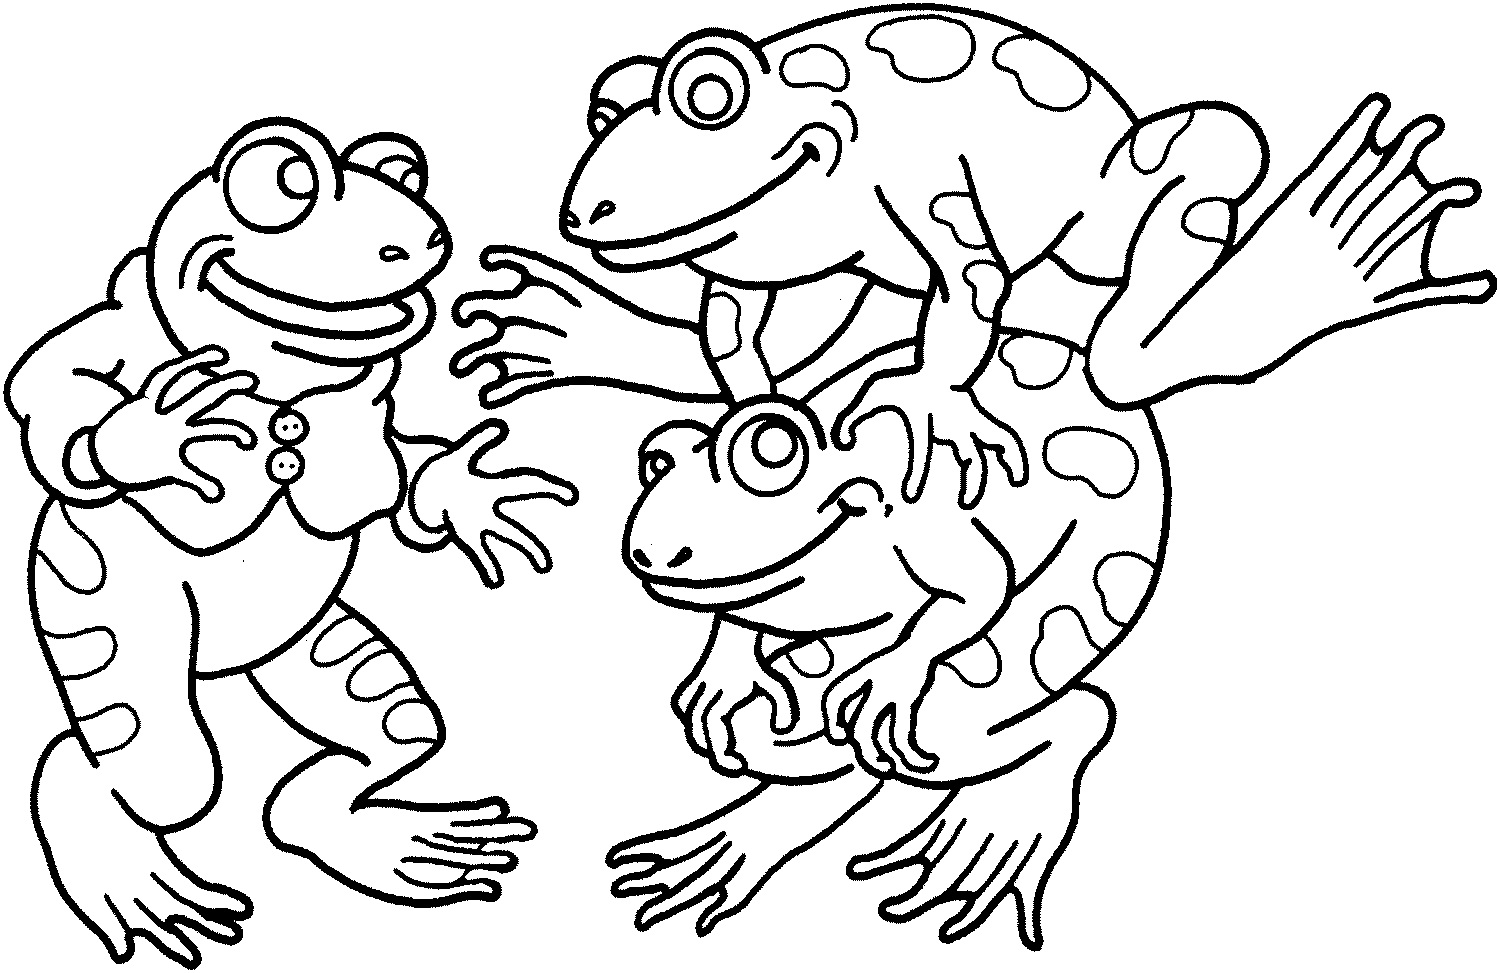 1500x973 Free Printable Frog Coloring Pages